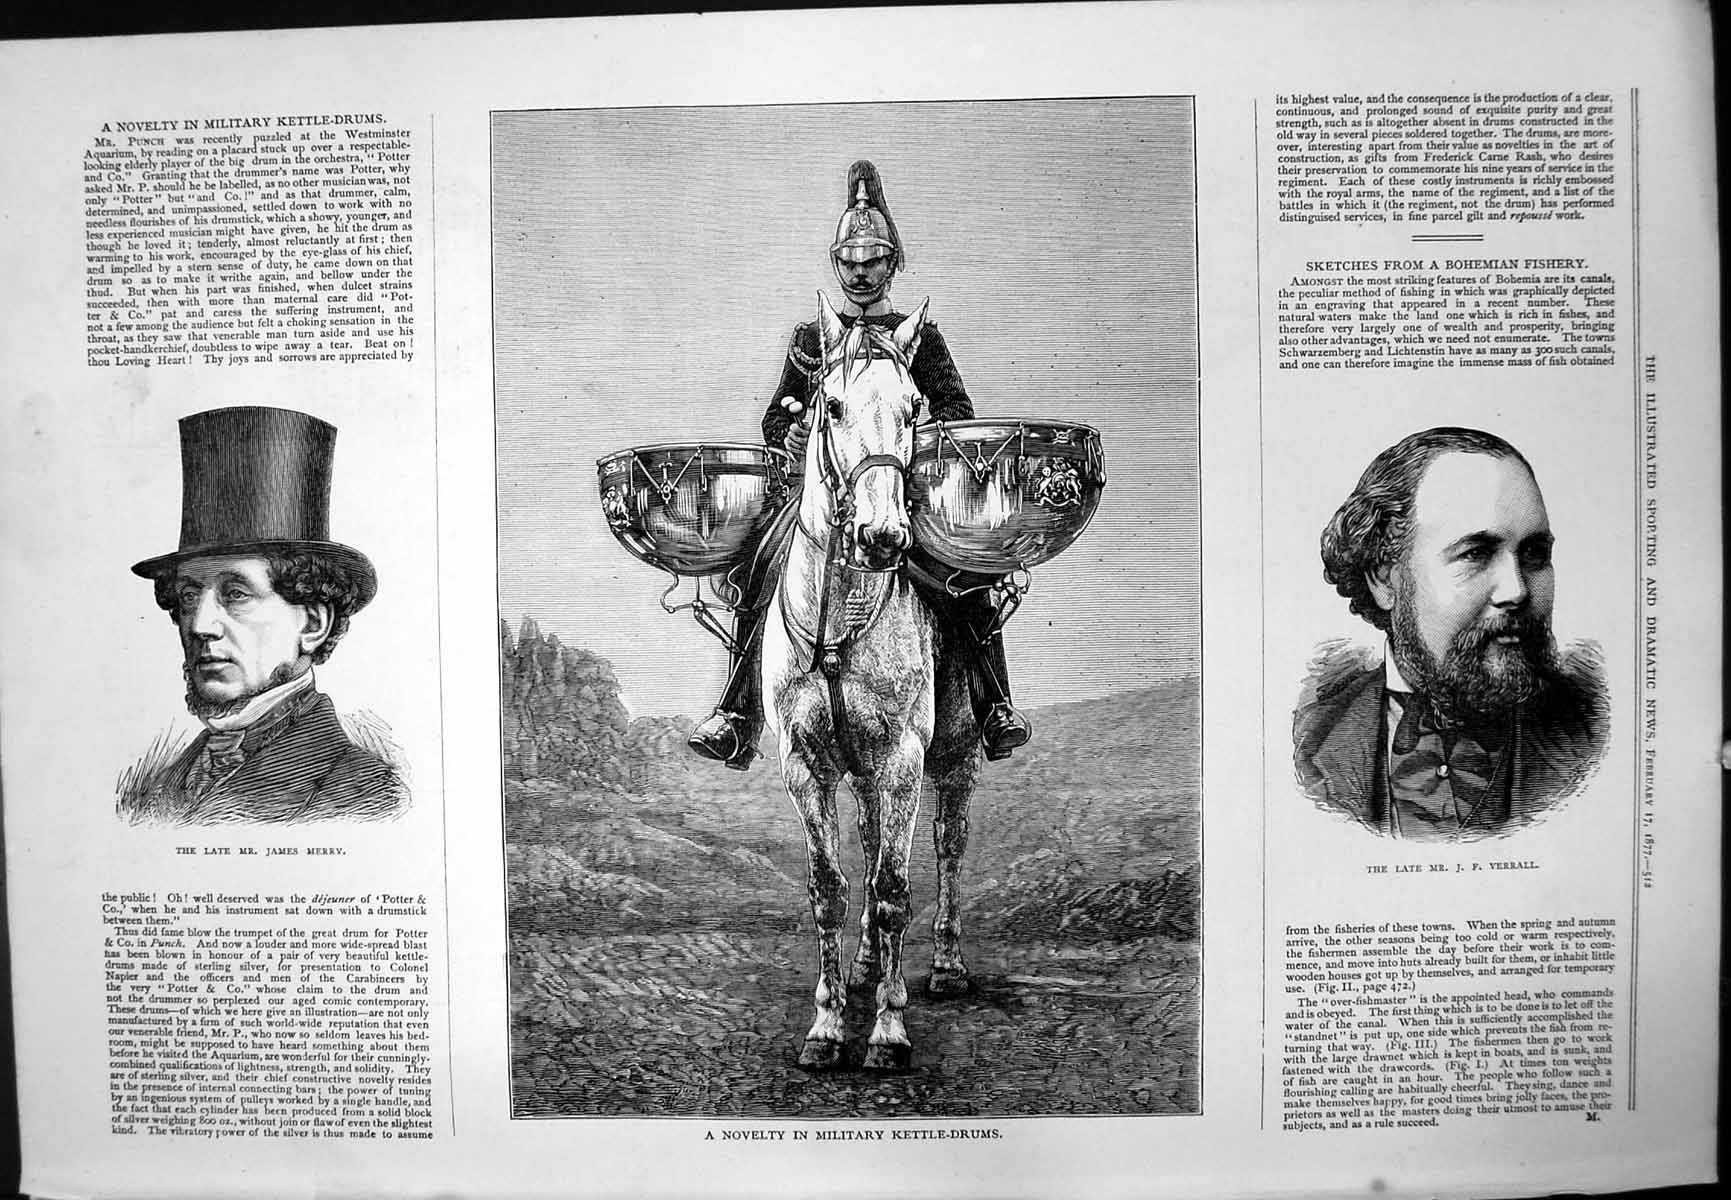 Old-Print-Late-Mr-Hames-Merry-Military-Kettle-Drums-Horse-JF-Verrall-1877-19th